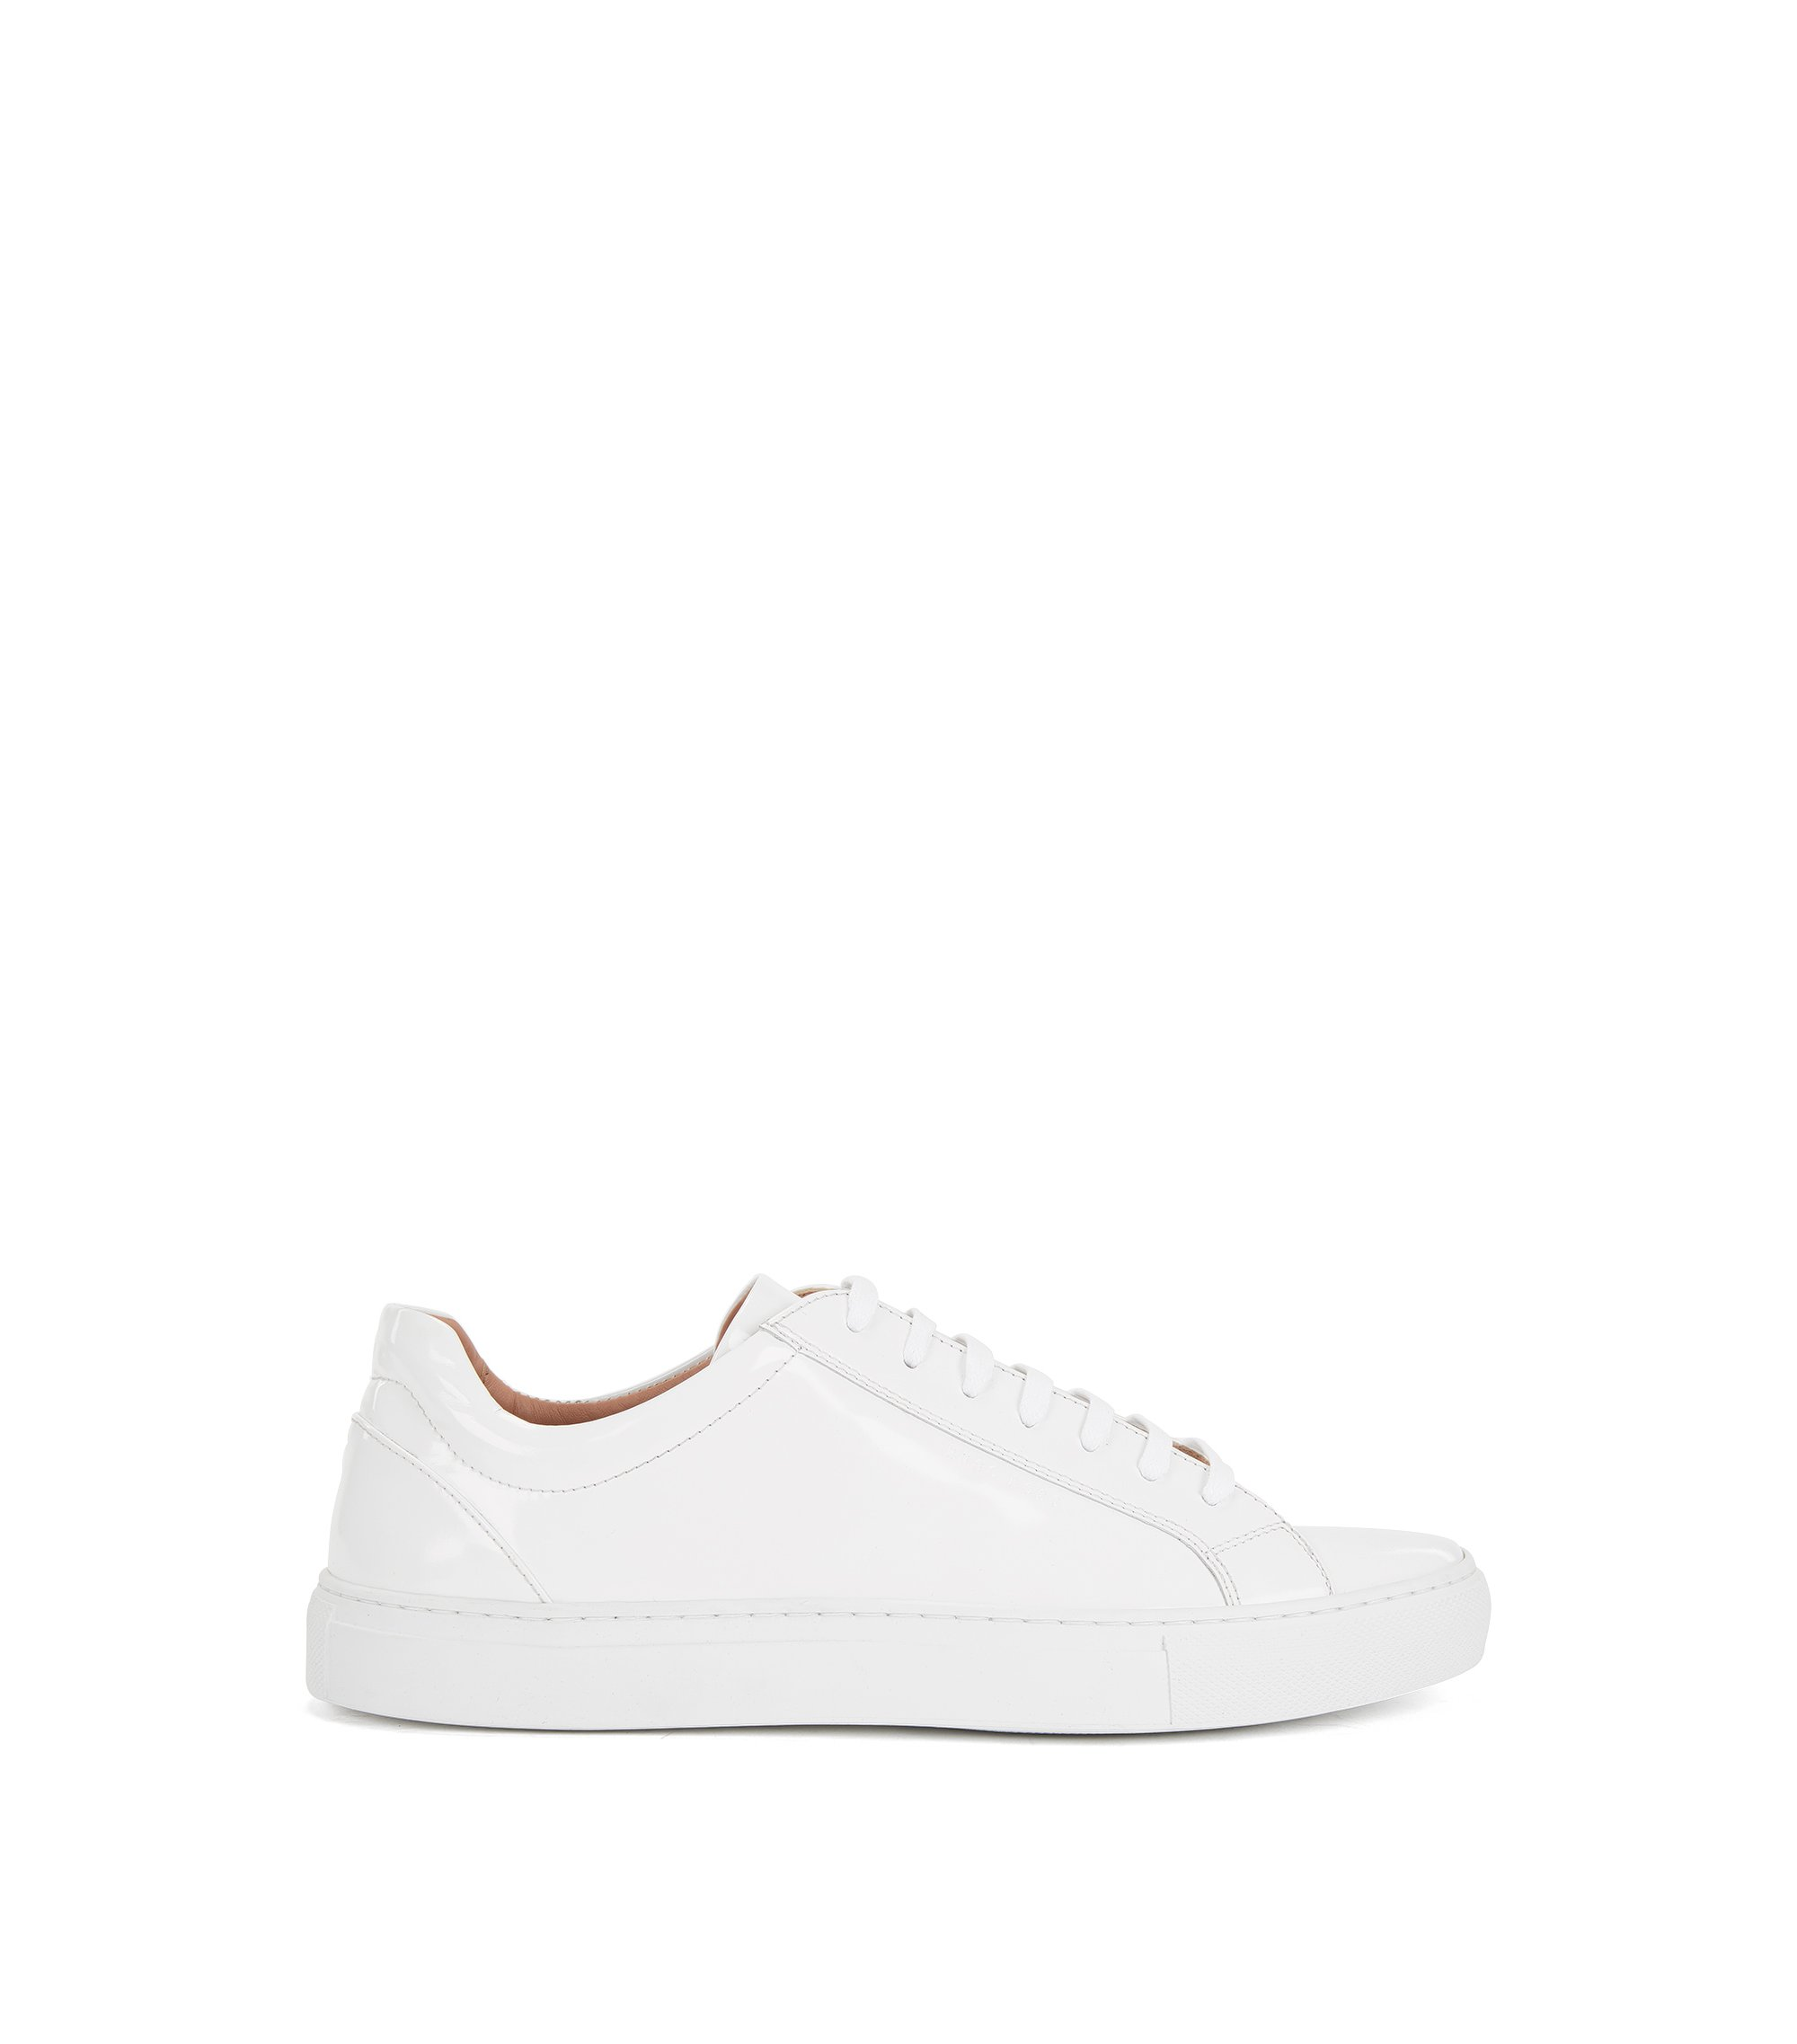 Sneakers low-top in pelle spazzolata, Bianco